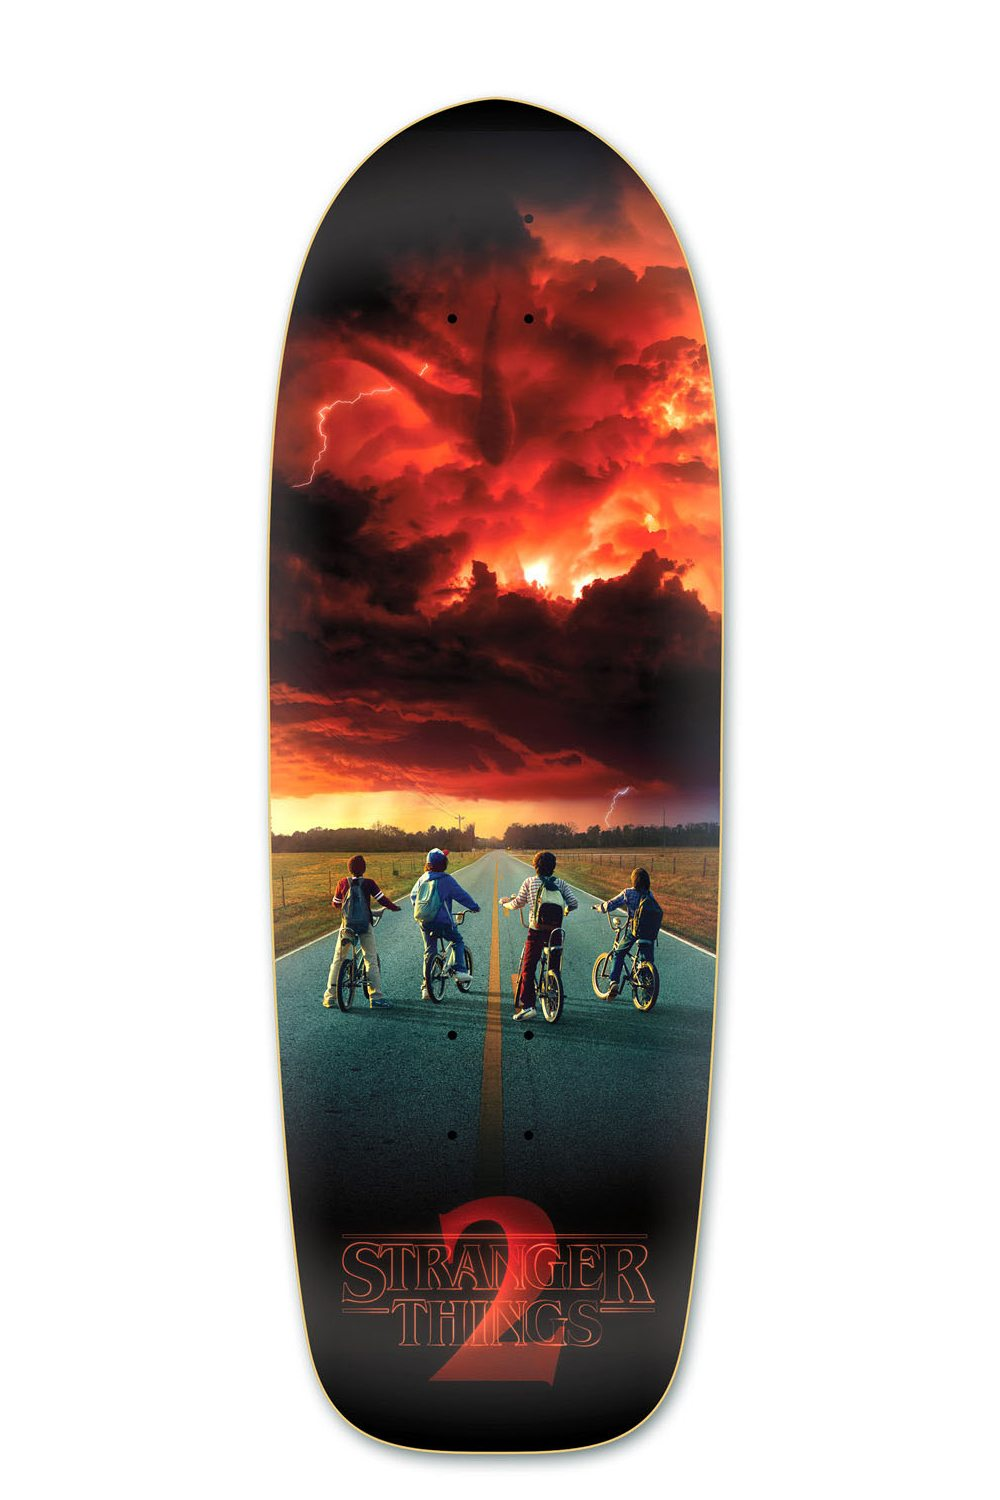 Stranger Things 2 ST2 Road Poster DeckMadrid Skateboards - New Stranger Things Season 2 Merchandise on the Way as BoxLunch Teams with Netflix